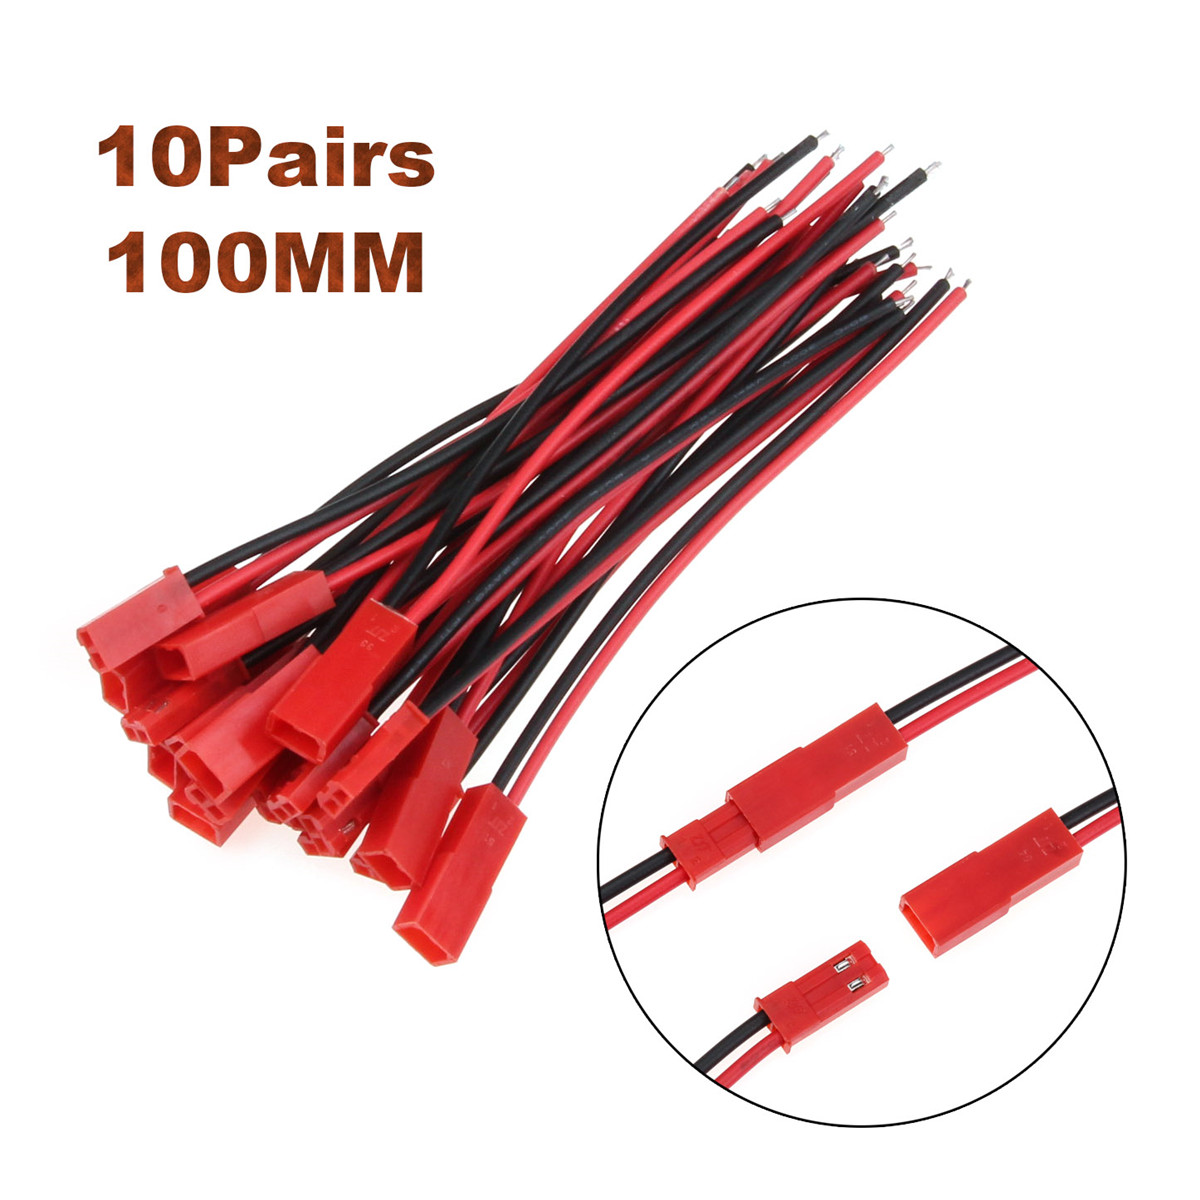 <font><b>2</b></font>/10Pairs 100/150mm <font><b>2</b></font> <font><b>Pin</b></font> <font><b>Connector</b></font> Plug JST <font><b>Cable</b></font> Male/Female Connectors For RC BEC Battery Helicopter DIY FPV Drone Quadcopter image